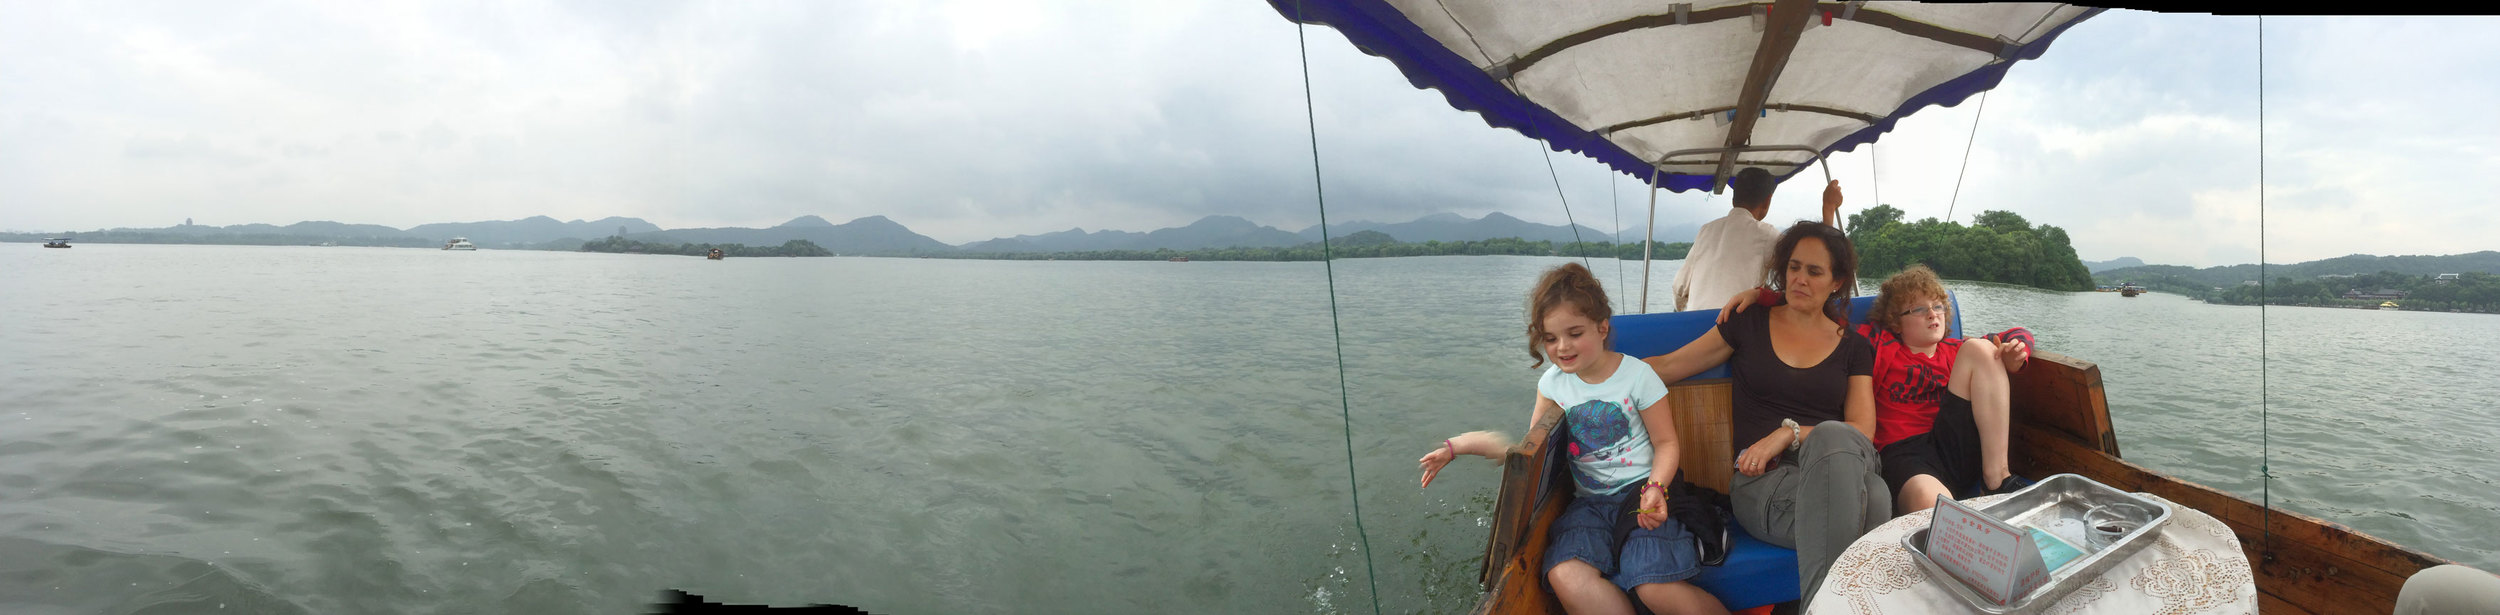 On a slow boat in China...